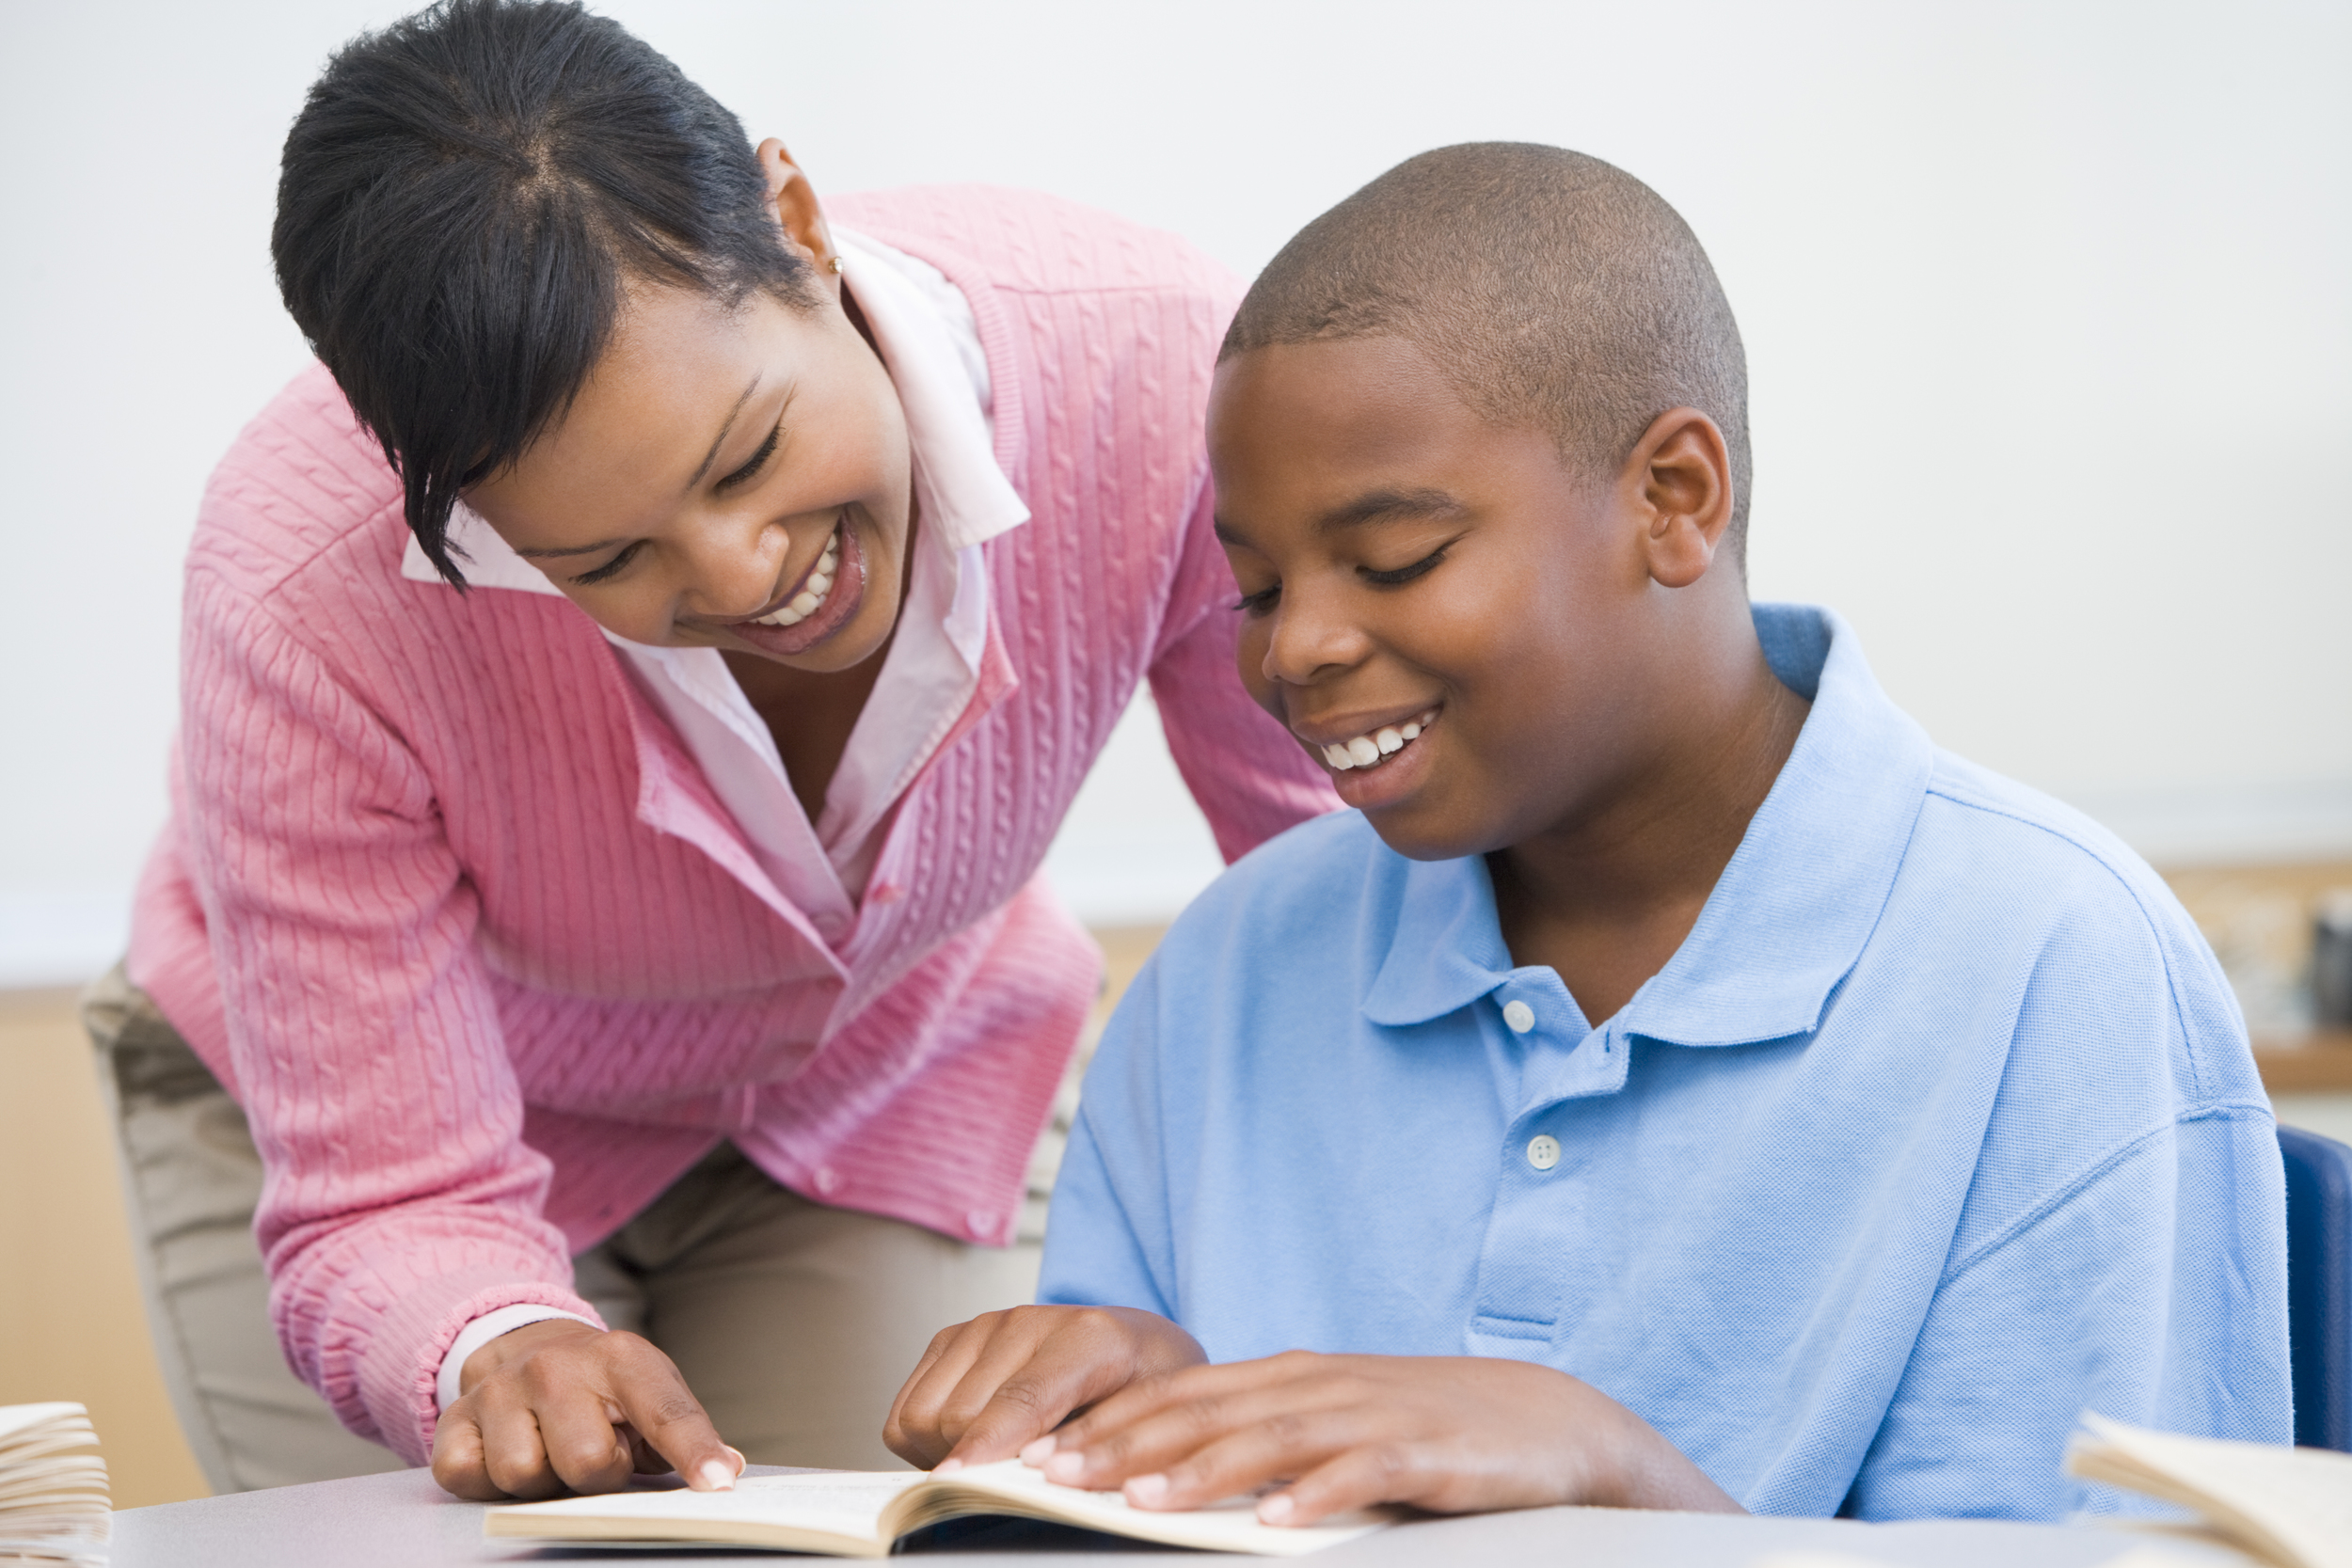 bigstock-Student-In-Class-Reading-With--3917310.jpg